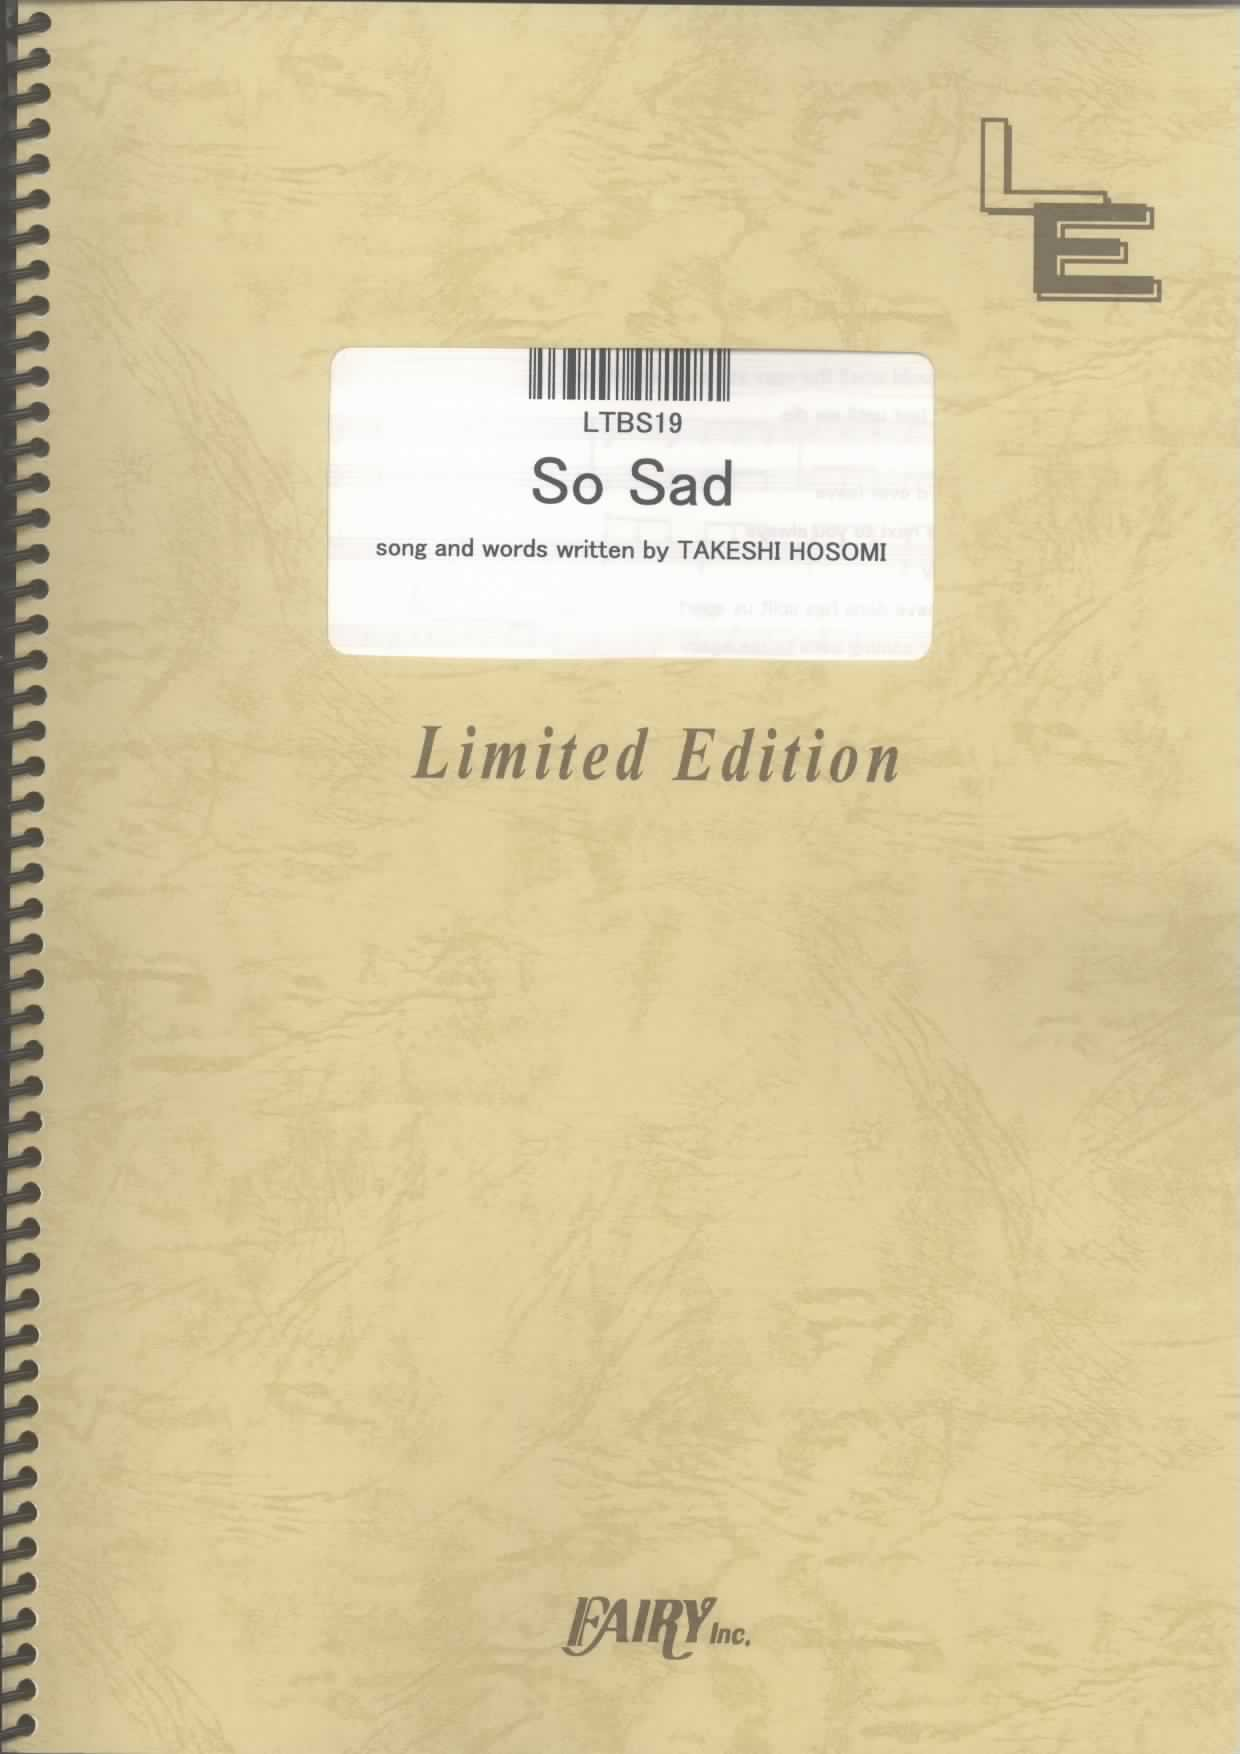 So Sad by ELLEGARDEN LTBS19 pdf